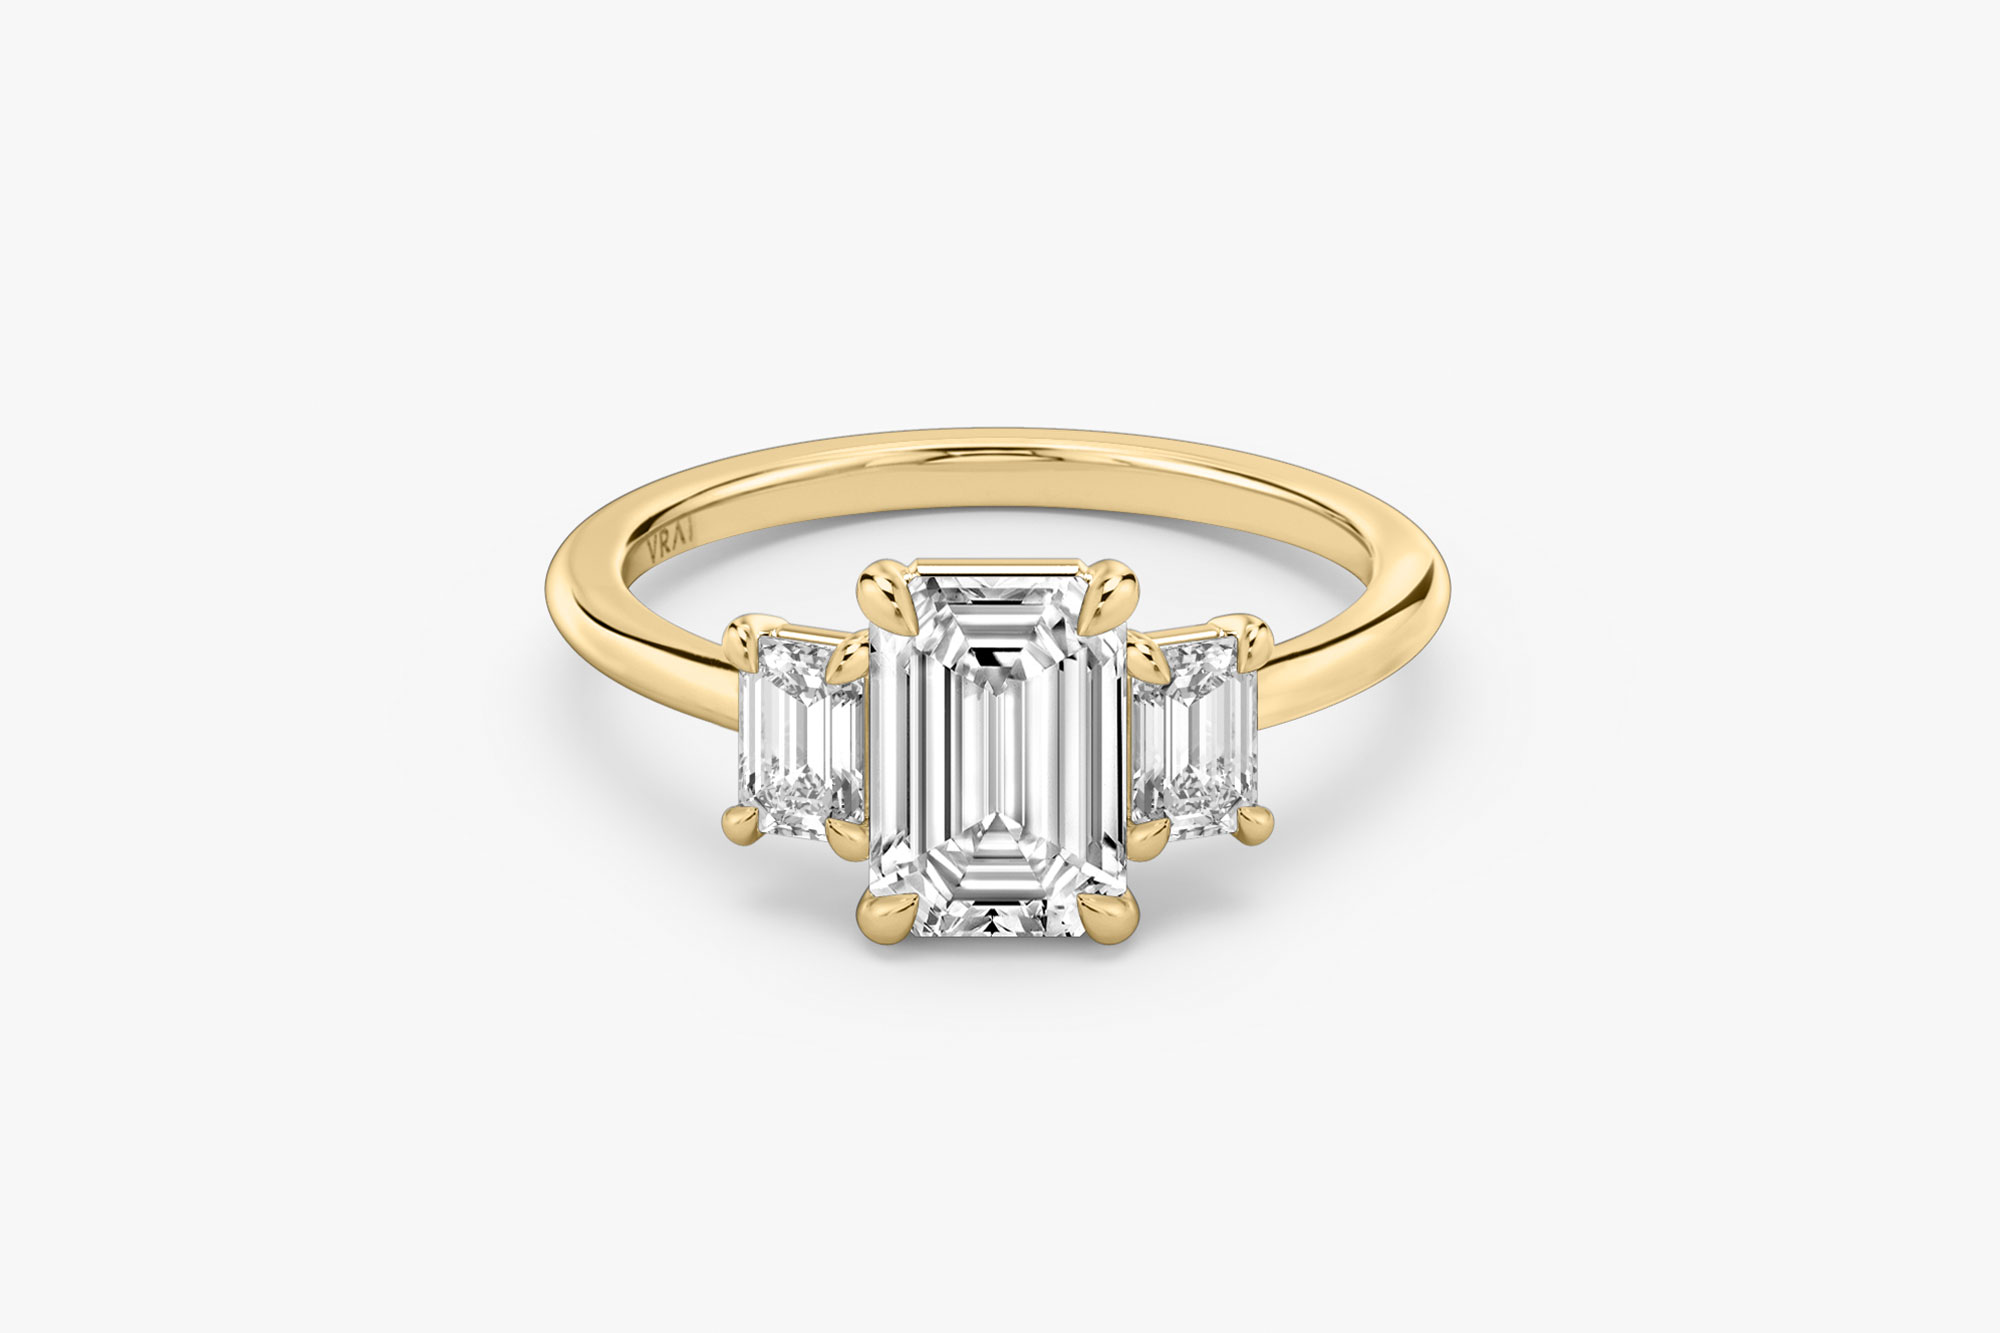 The Three Stone ring in 18k yellow gold with an emerald cut diamond